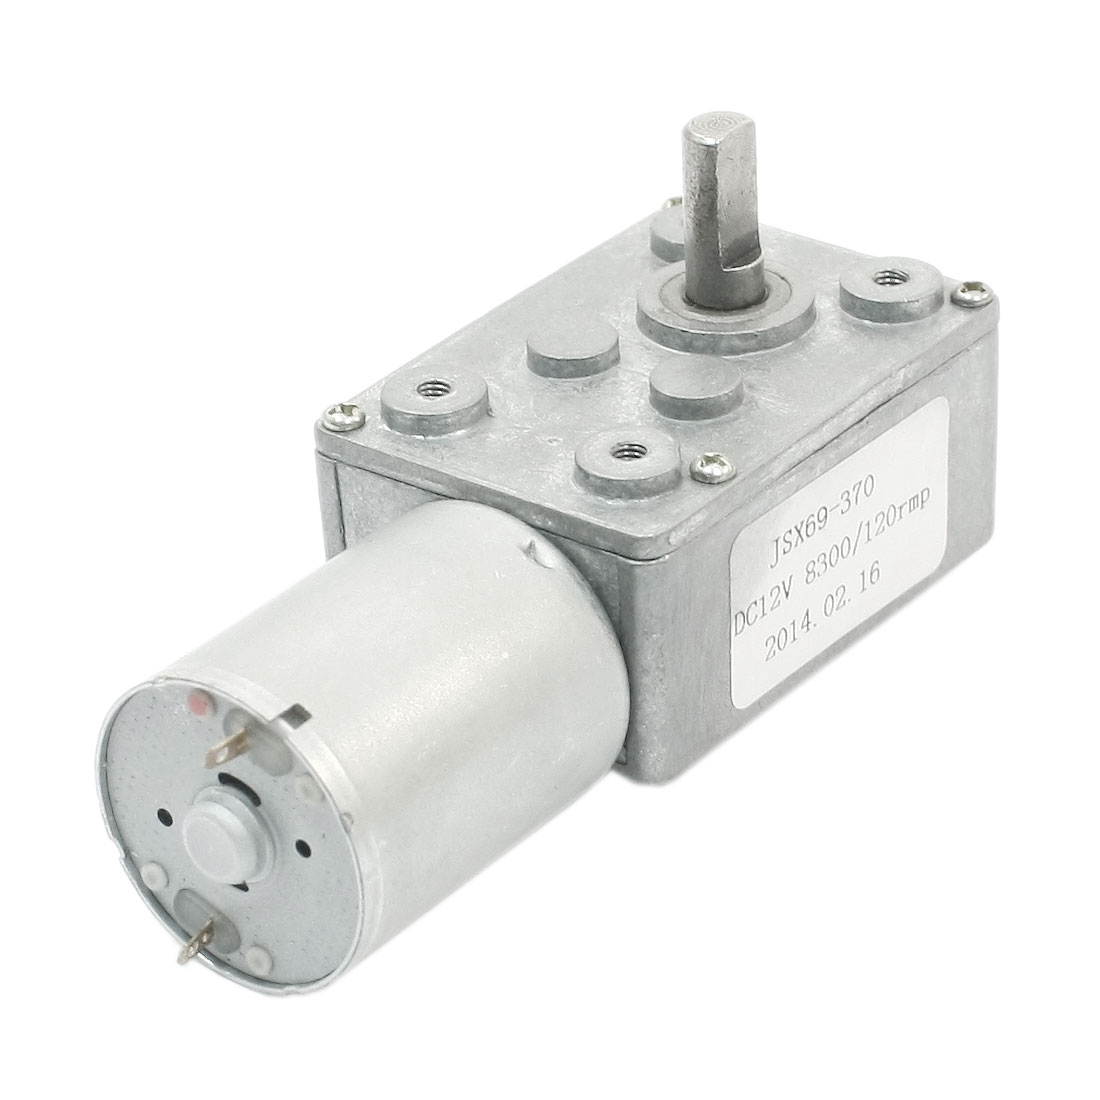 JSX69-370 4.5mm Dia D Shaft 2Pin Connect Speed Rotary Reducer Reduction Ratio 8300RPM/120RPM DC12V 8300RPM 120RPM Worm Geared Box Motor